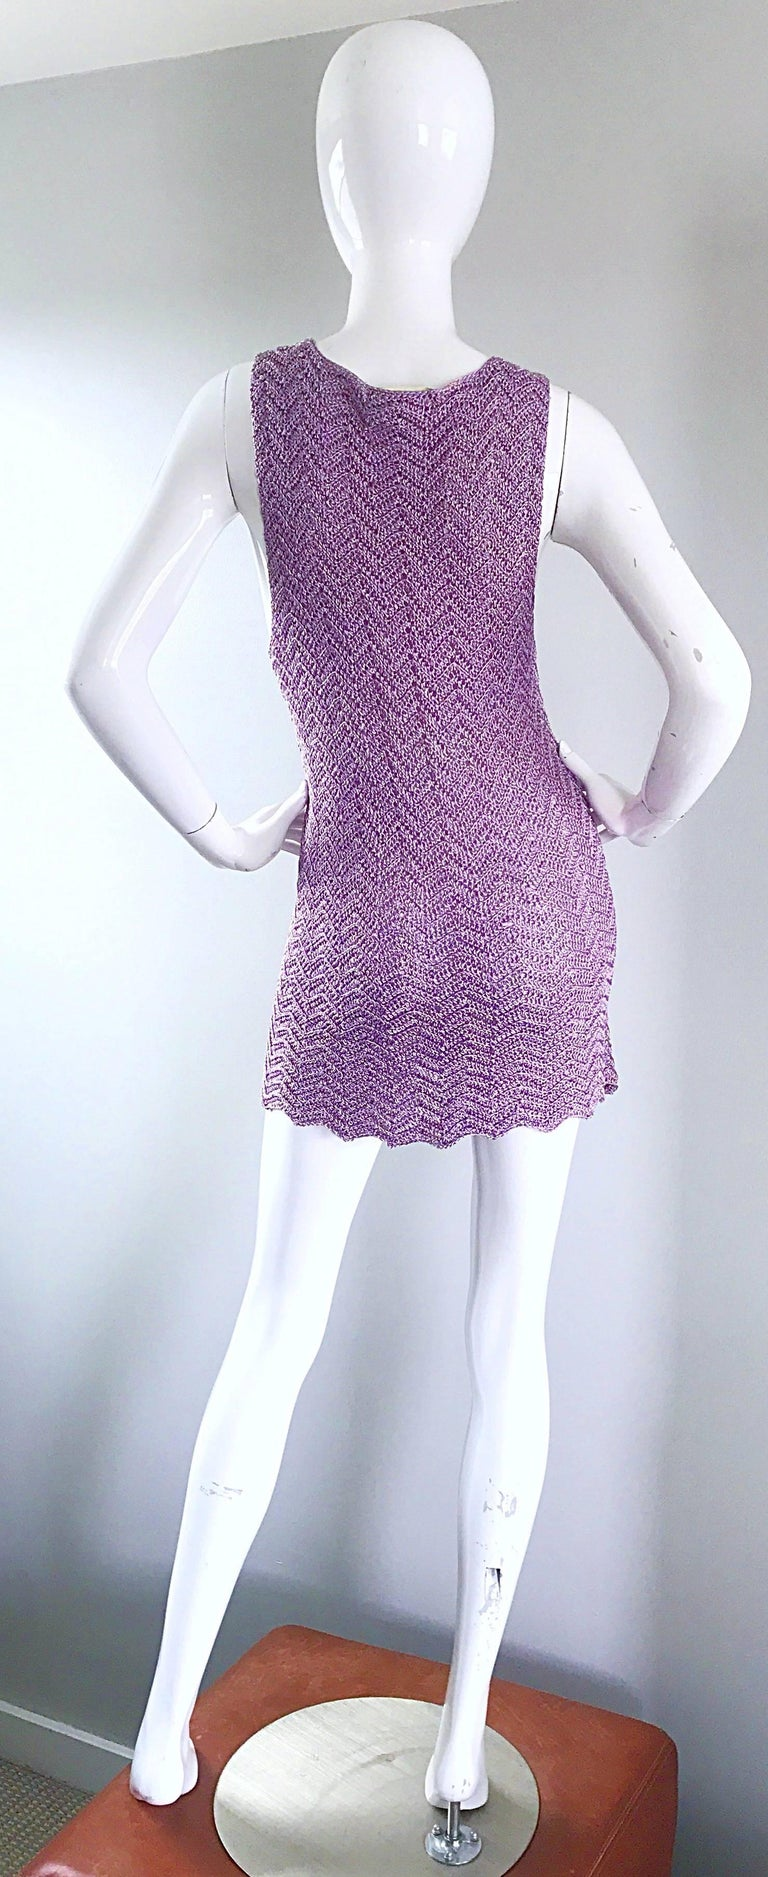 Women's Vintage Isaac Mizrahi Bergdorf Goodman 1990s Purple + Gold Crochet Mini Dress  For Sale